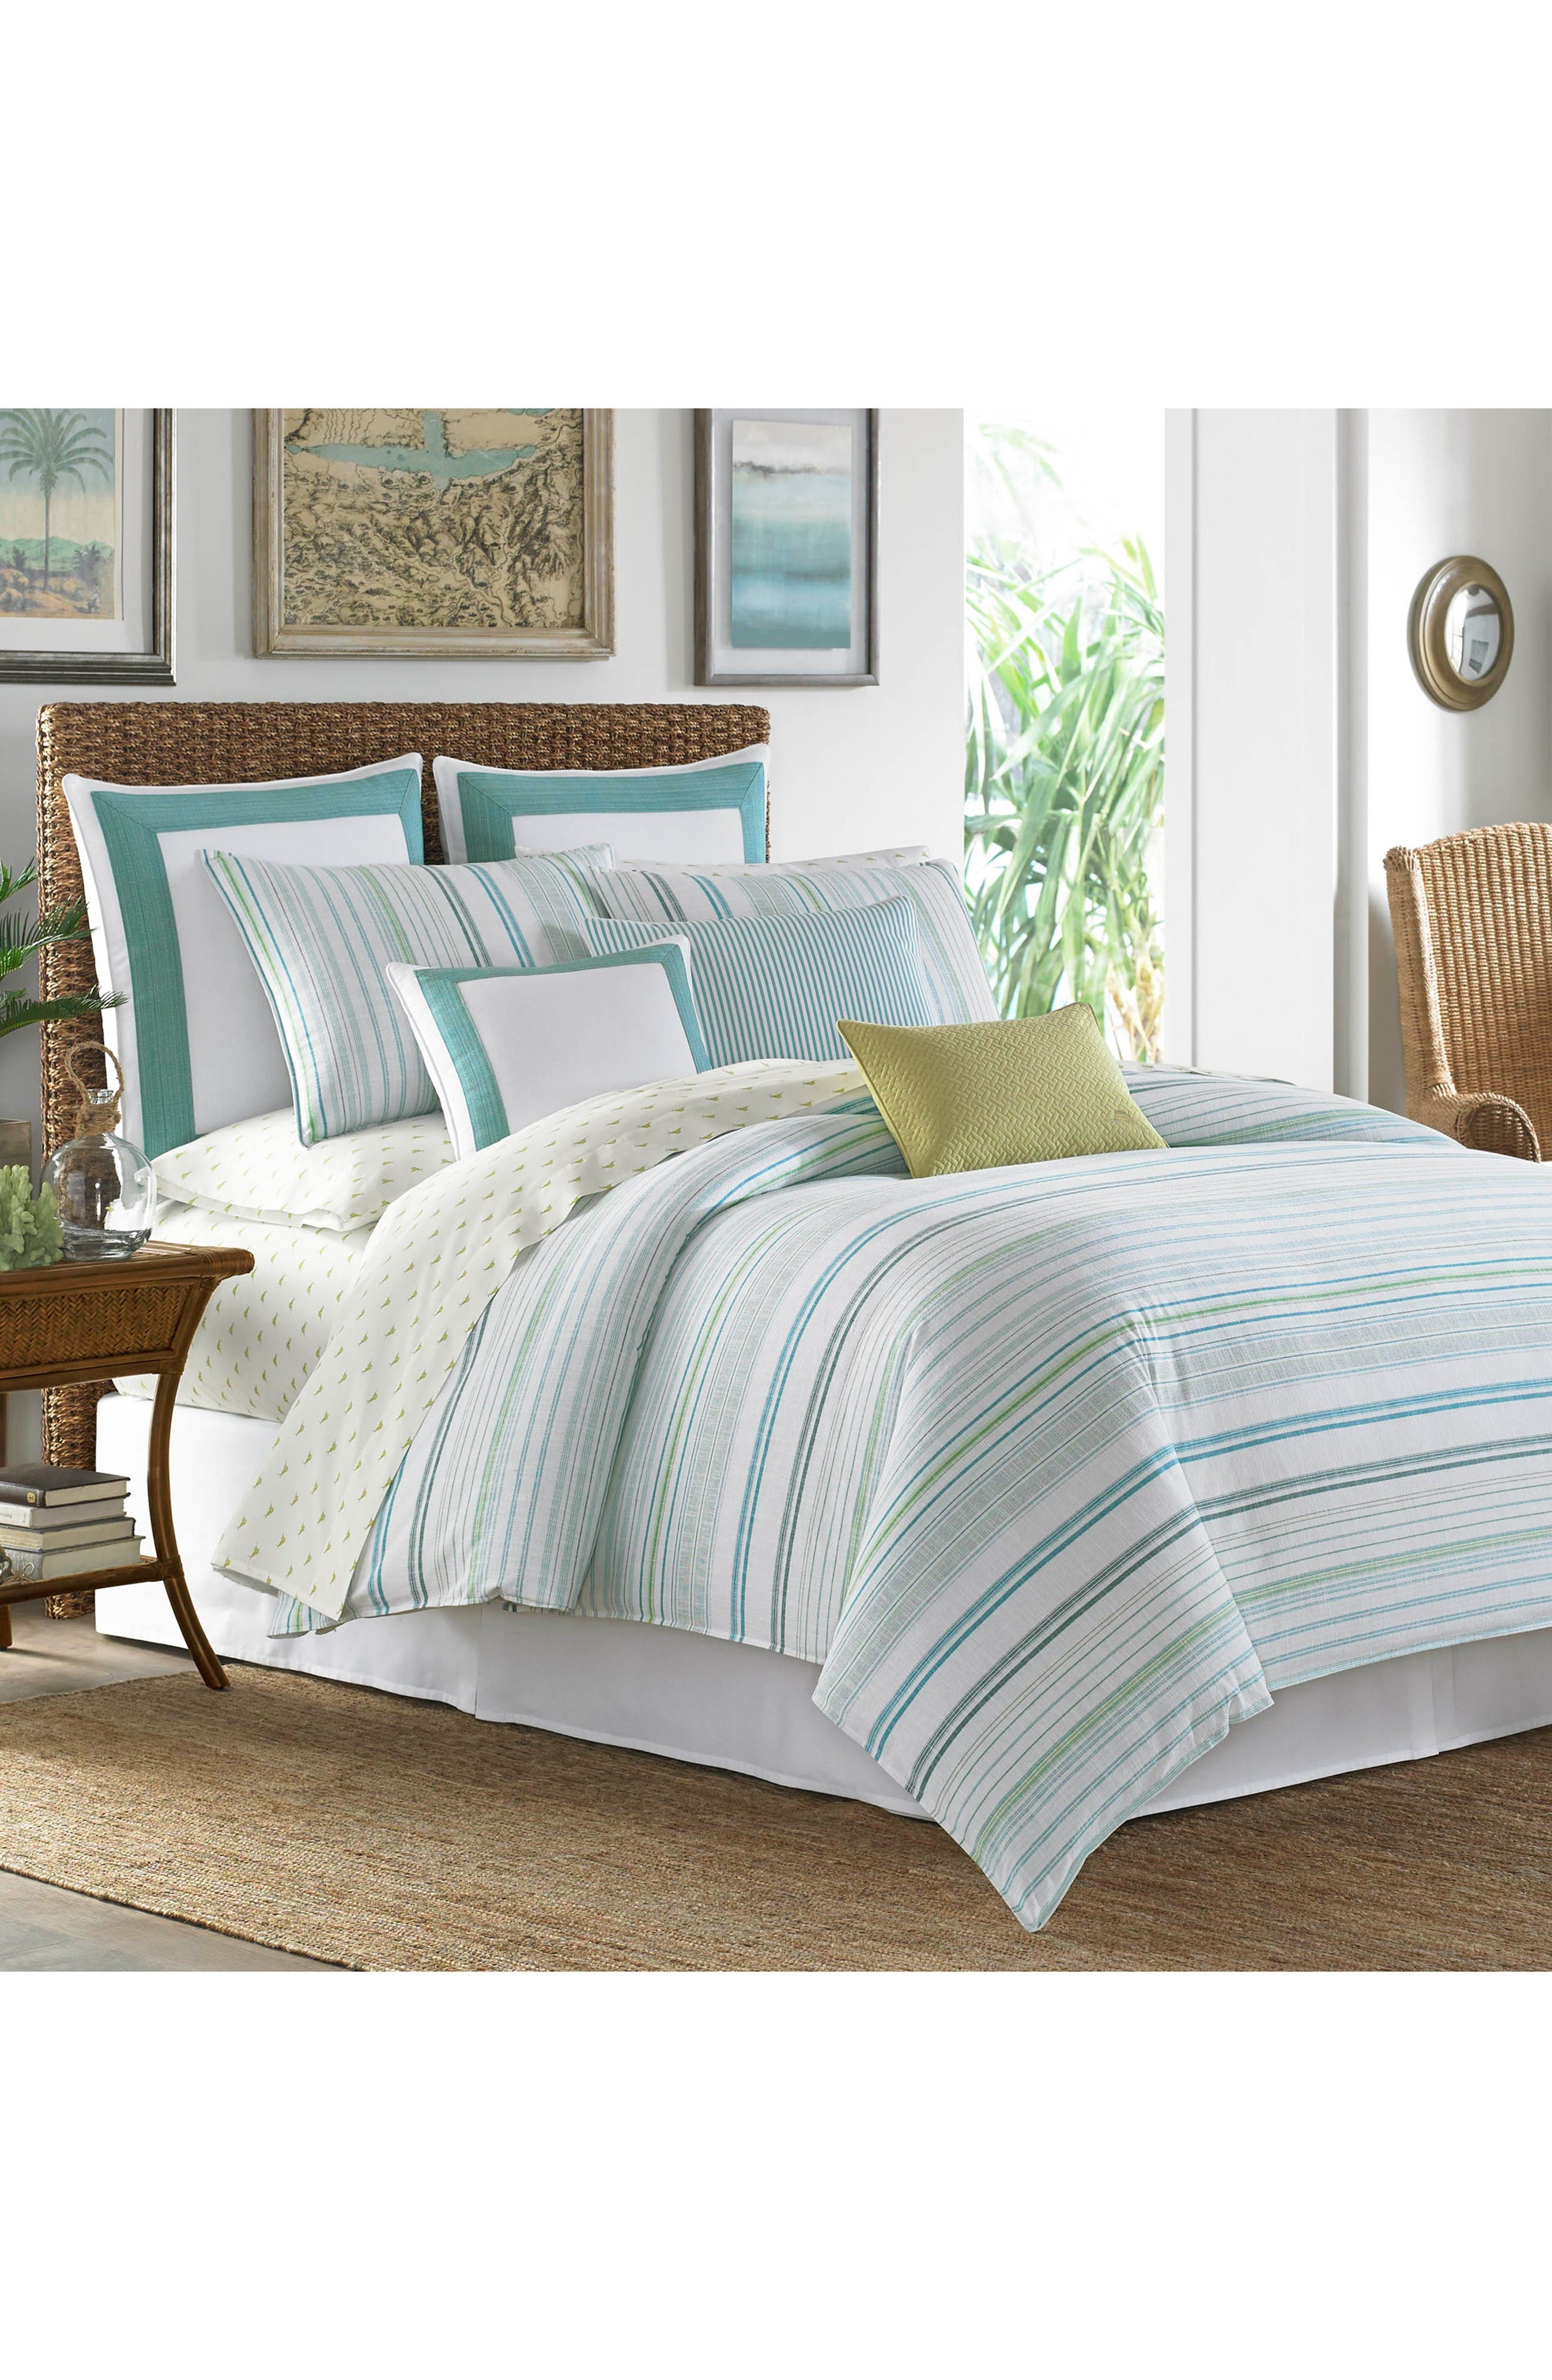 'La Scala Breezer' Duvet Cover,                             Alternate thumbnail 3, color,                             440